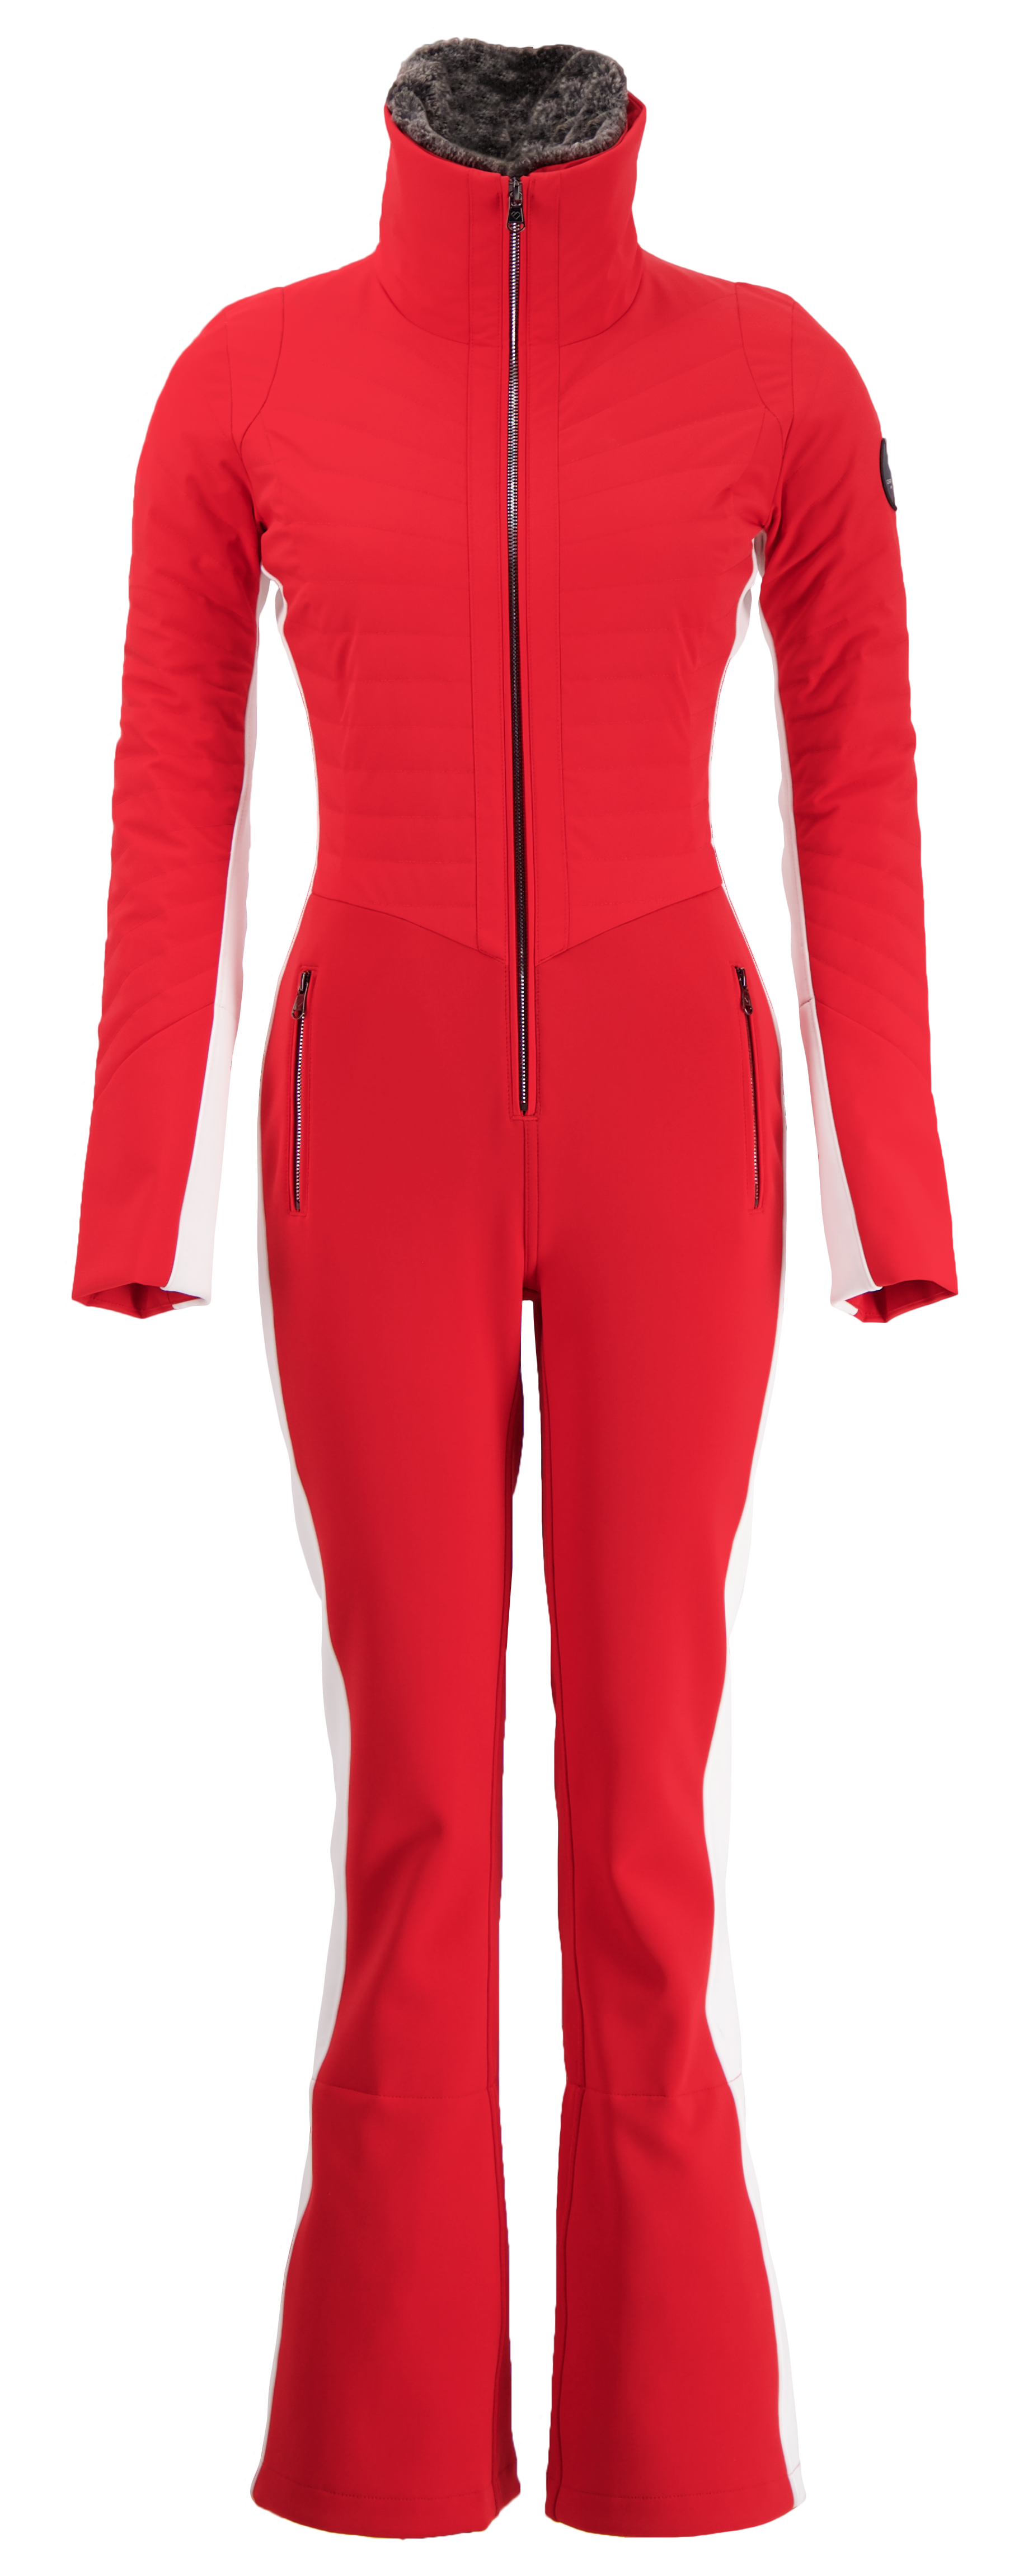 Lindsey Vonn's Signature Collection